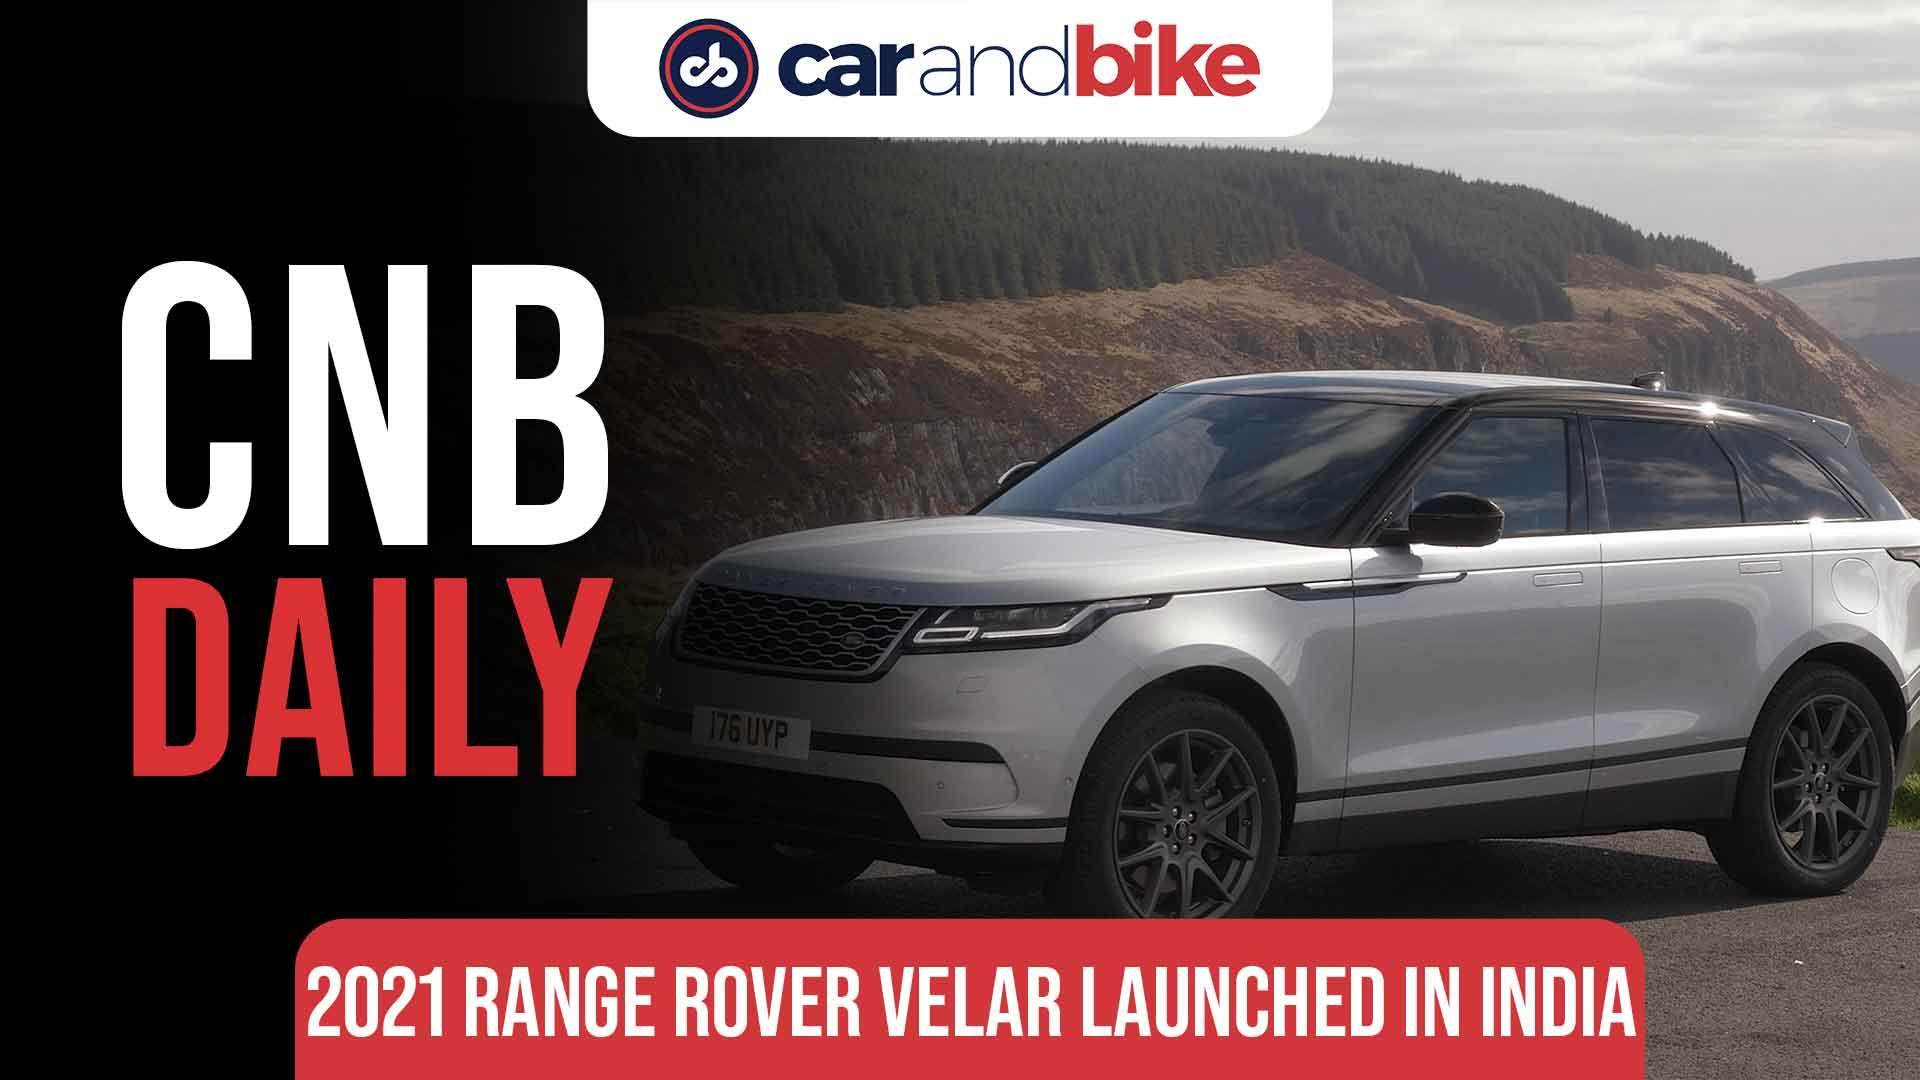 2021 Range Rover Velar launched in India